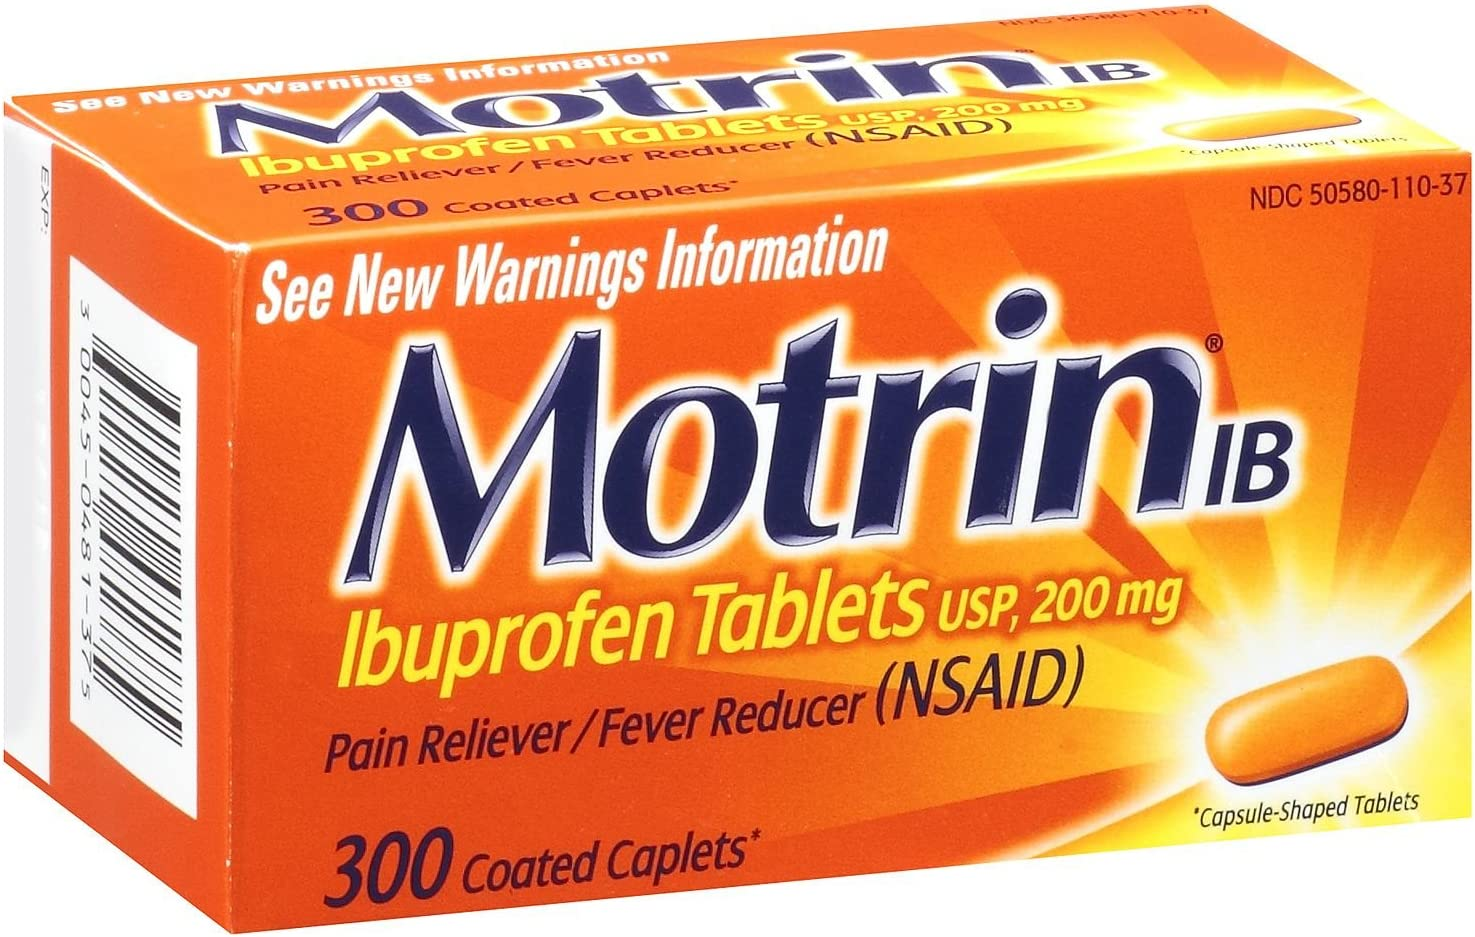 For relief of aches and pains - Motrin IB (Ibuprofen) Pain Relie